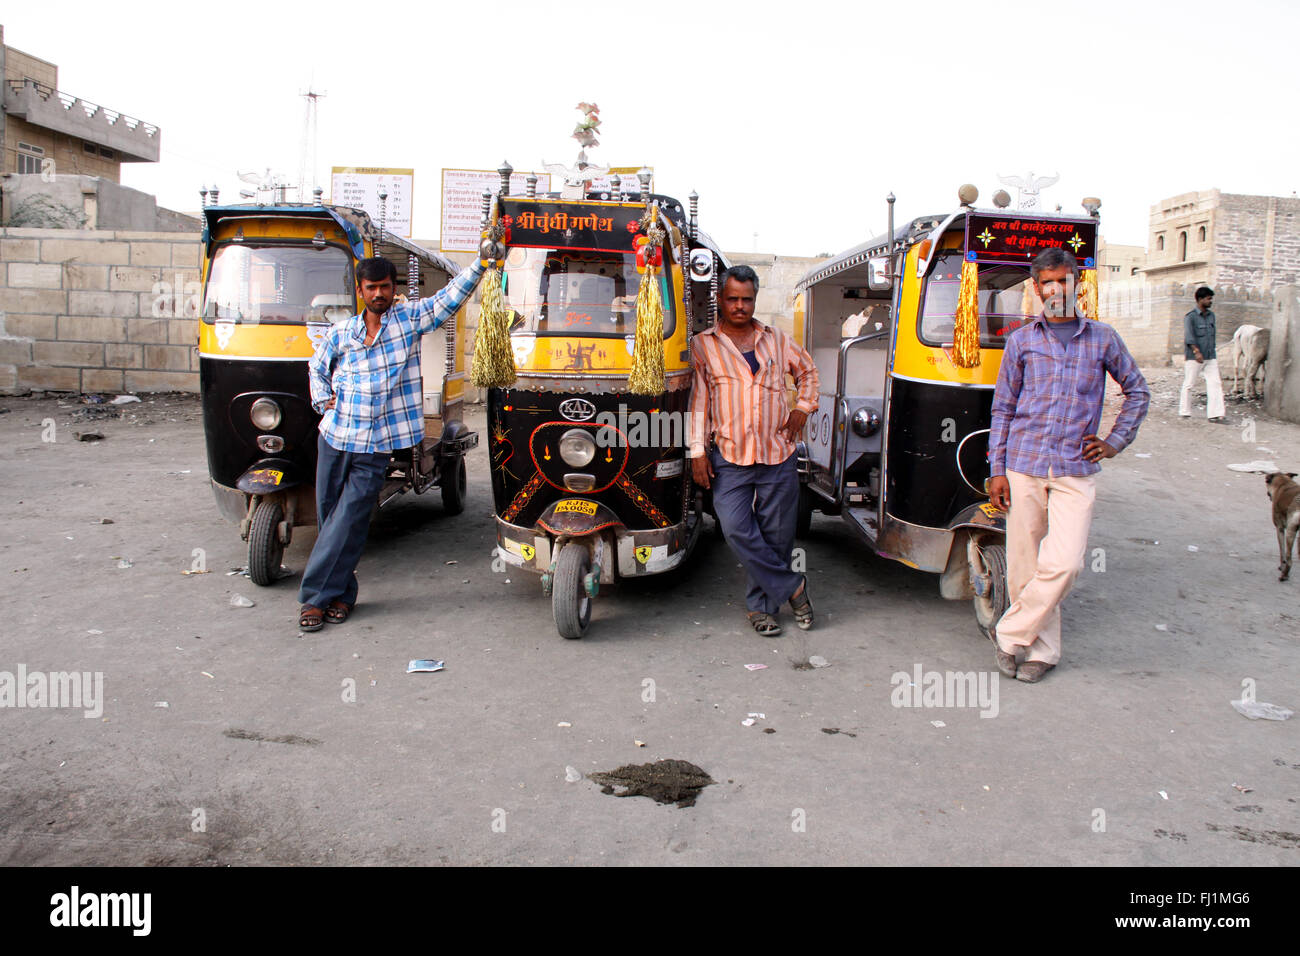 Rickshaw drivers stand by their vehicle in Jaisalmer, India - Stock Image